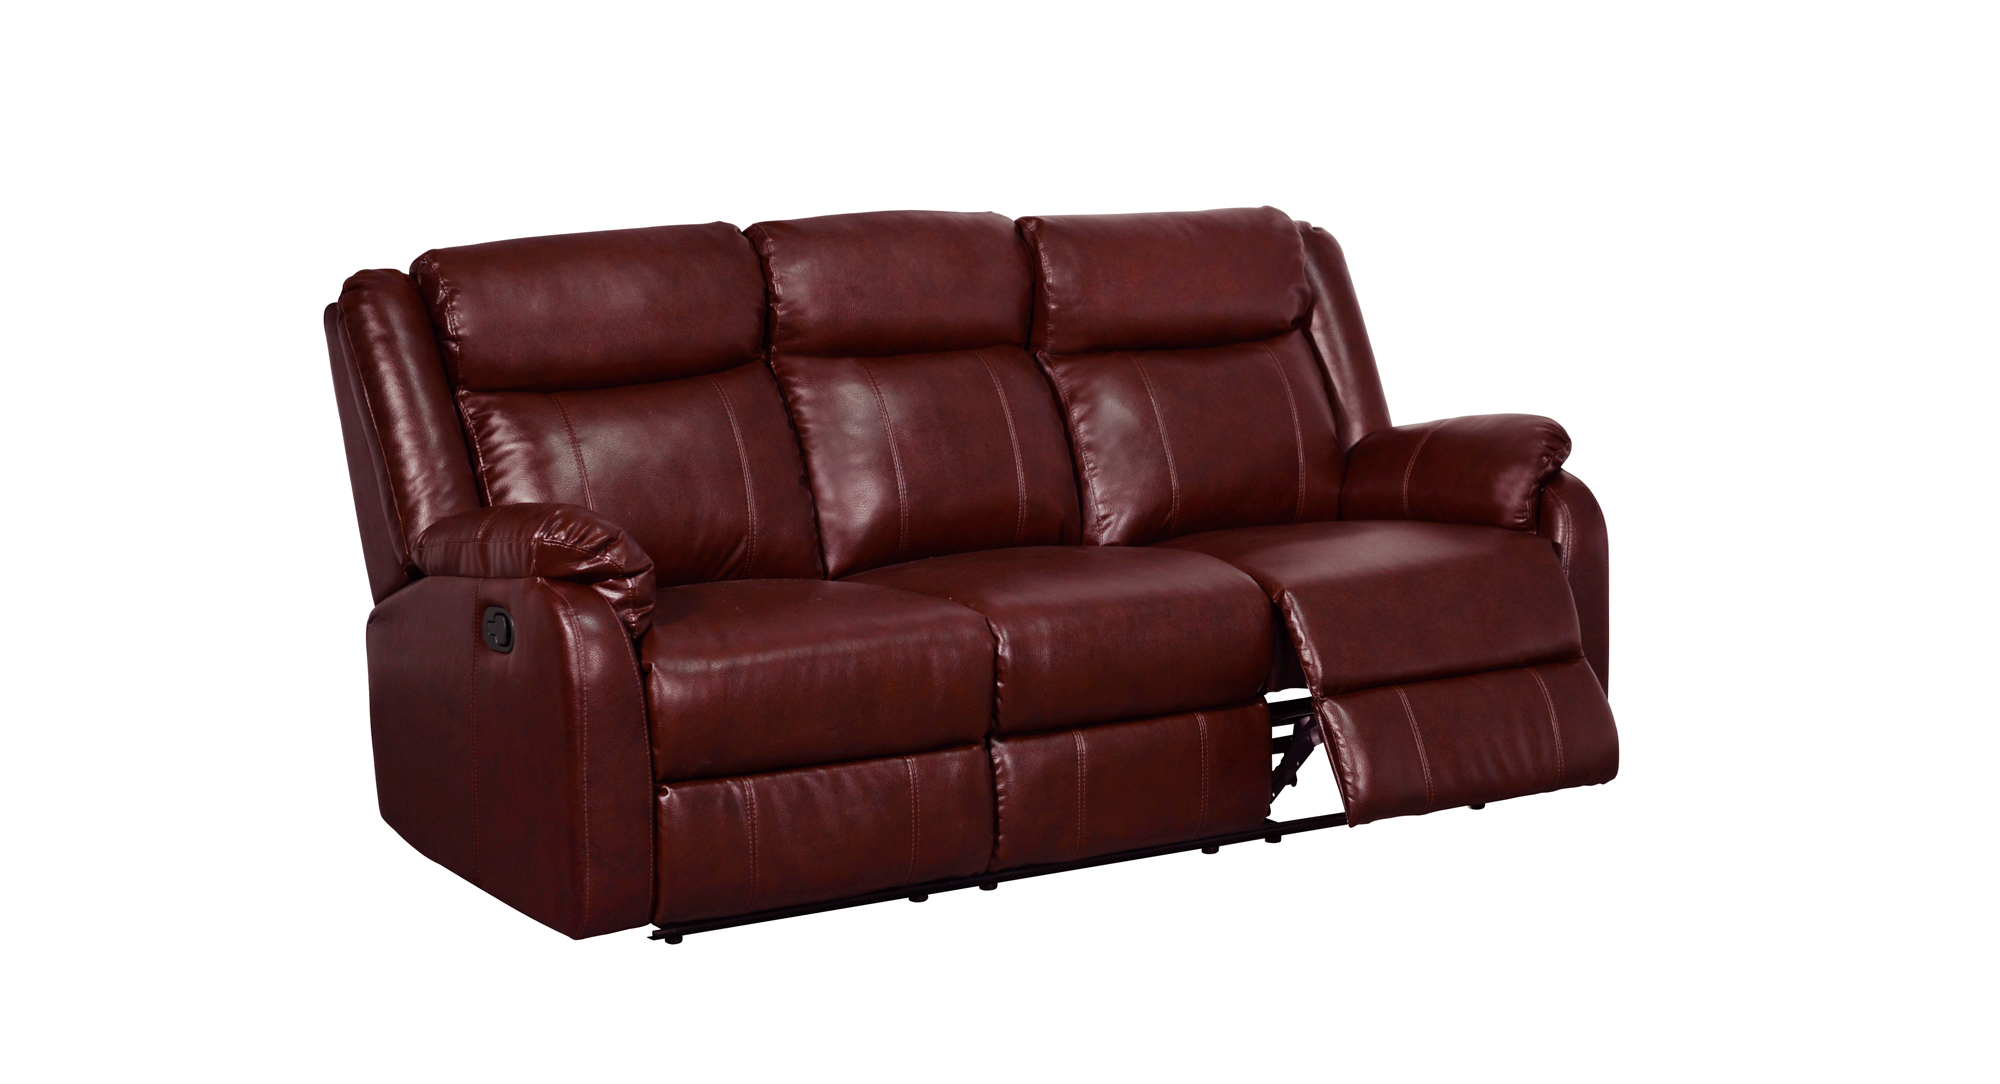 U9303 Burgundy PU Reclining Sofa by Global Furniture